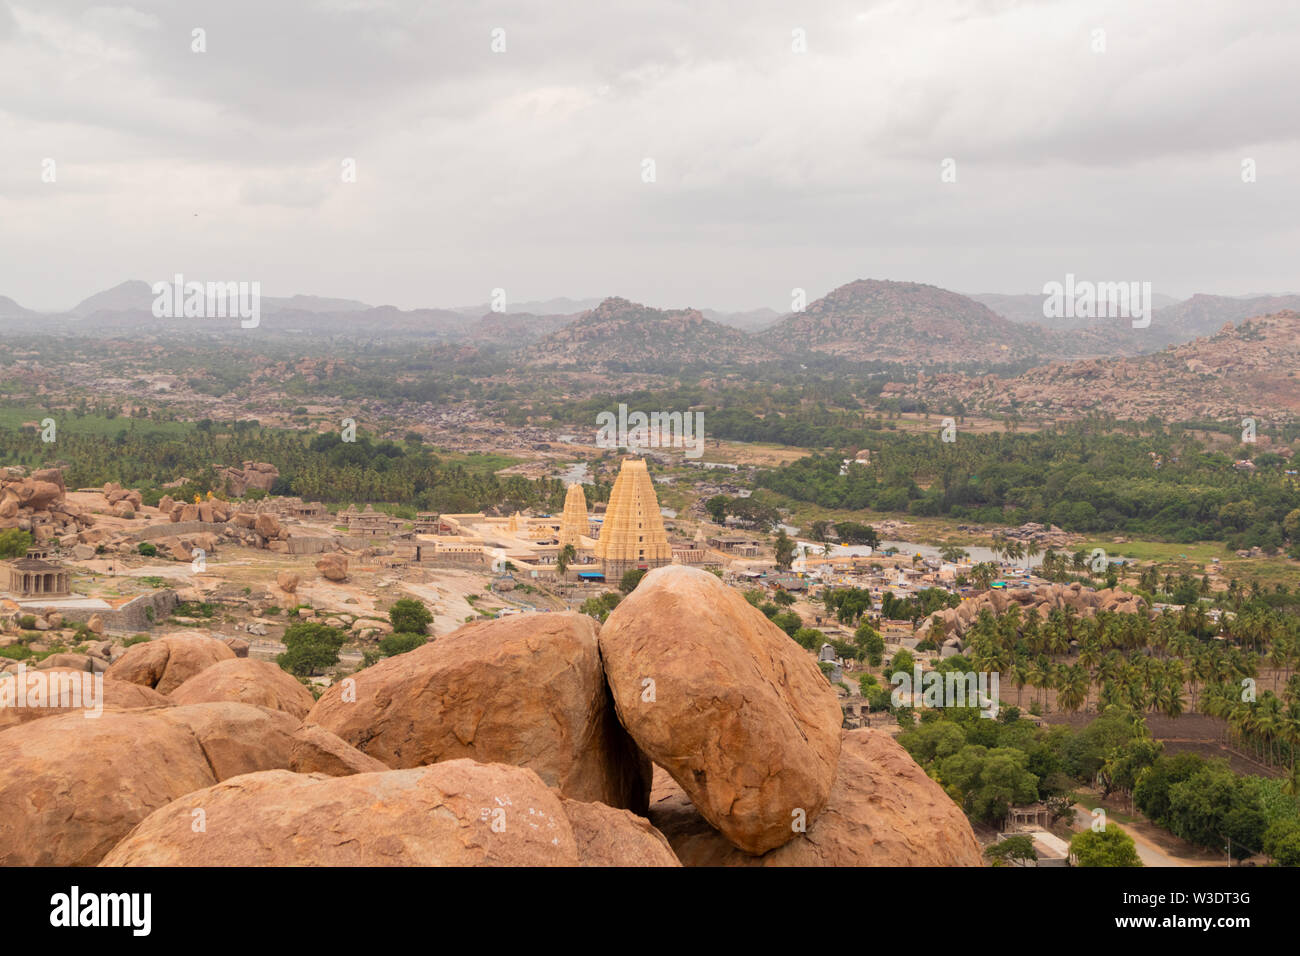 Aerial View of Virupaksha or Pampapati temple and Whole Hampi, Karnataka, India - Stock Image